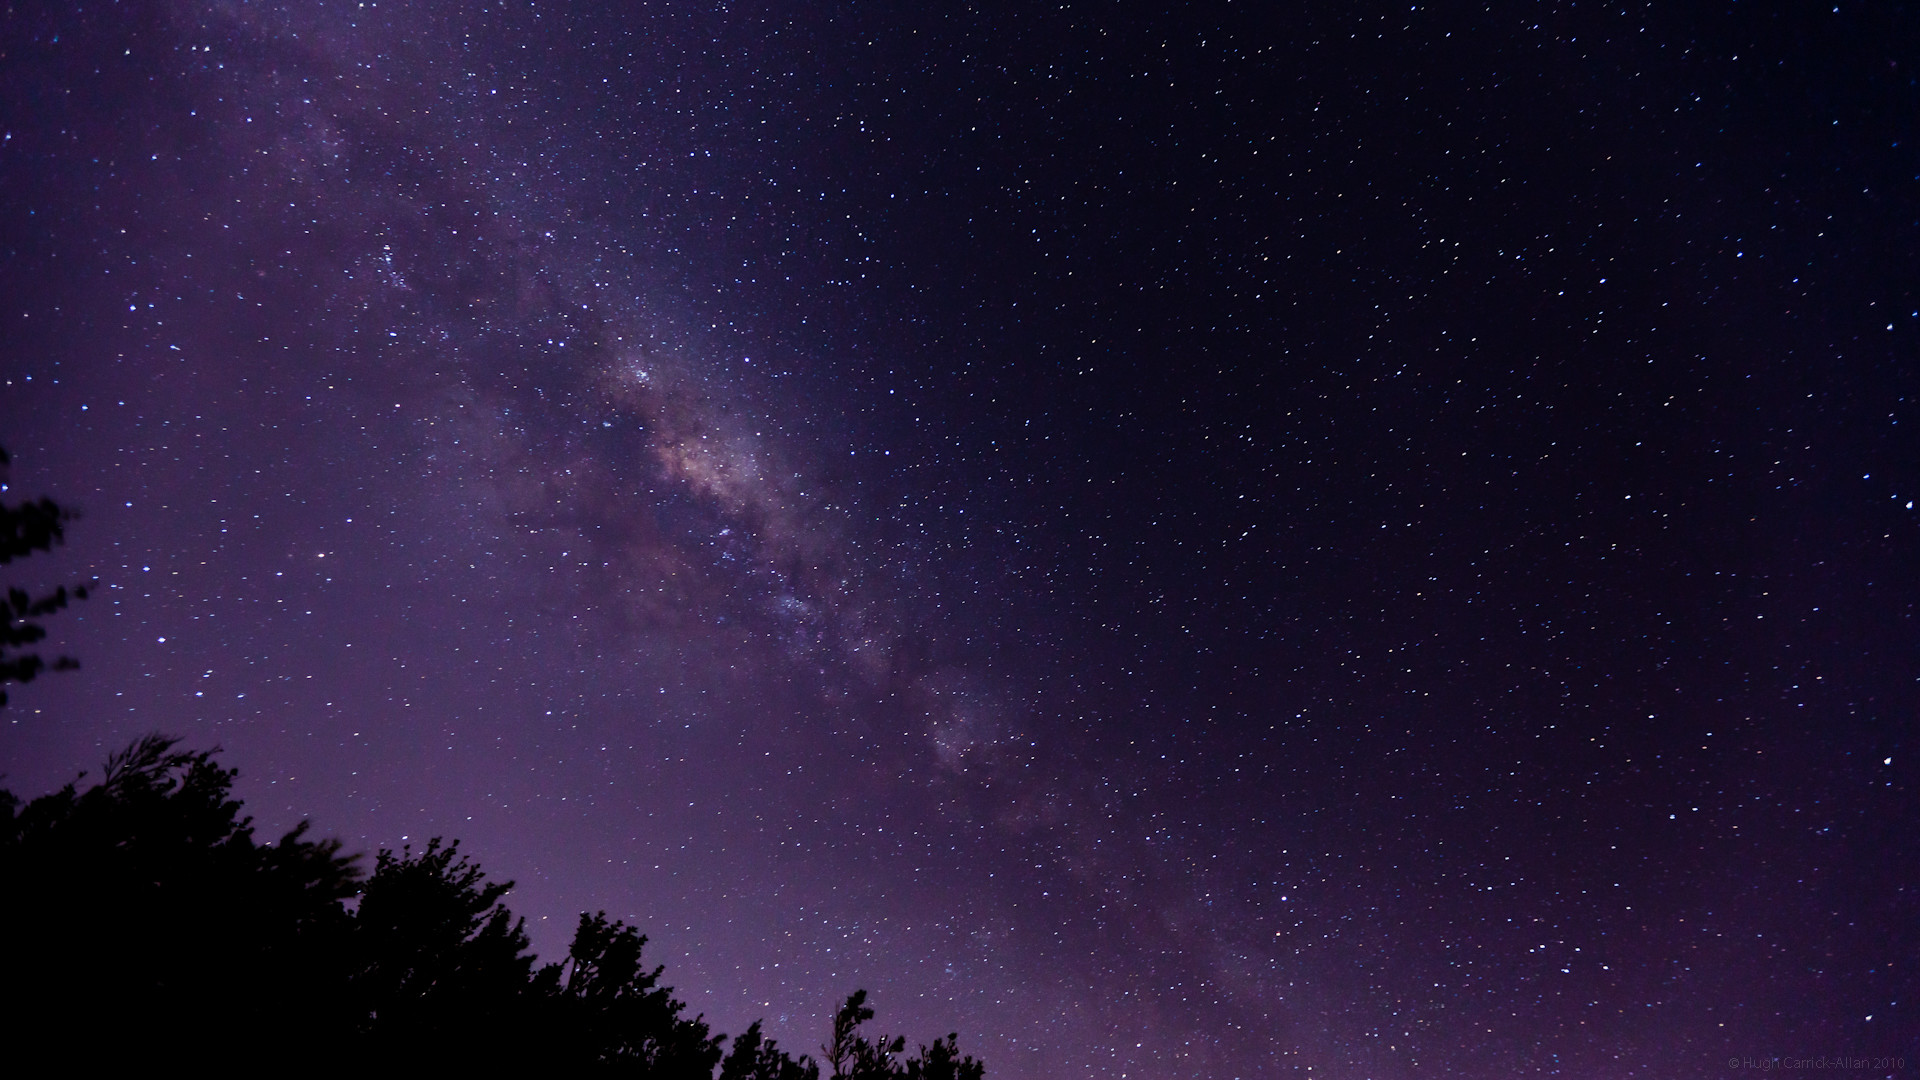 1920x1080 milky way from earth